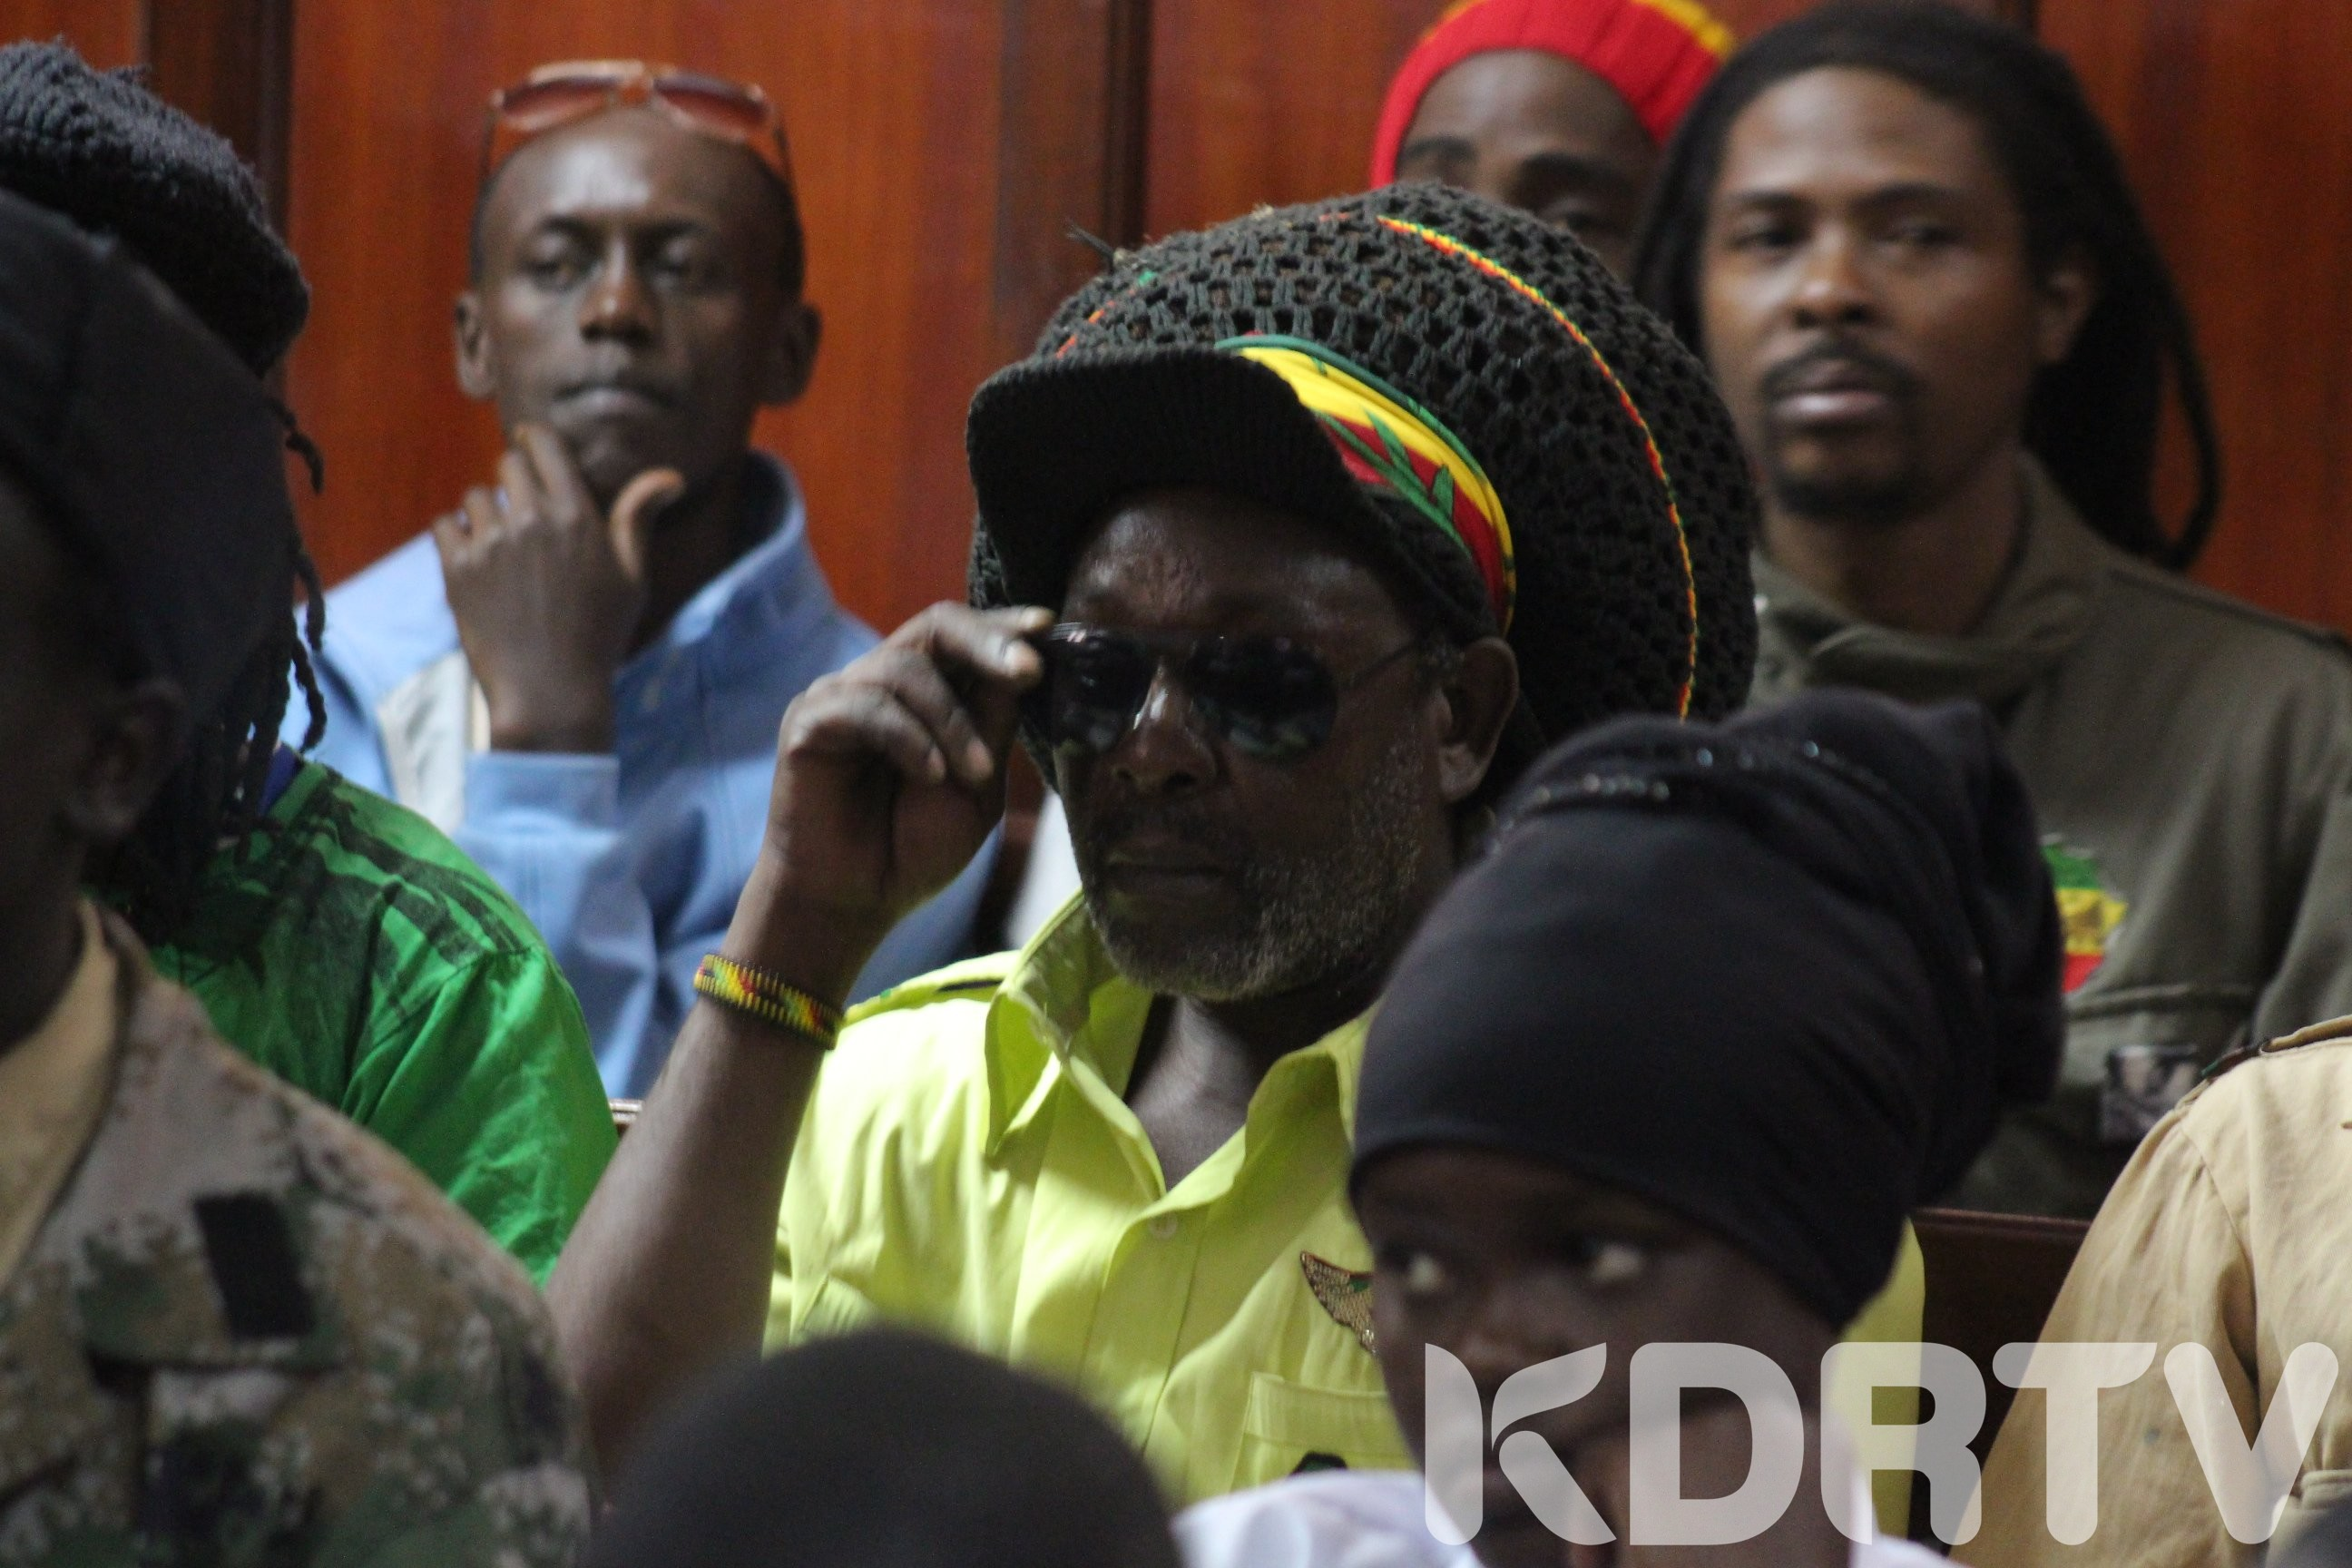 Family and members of the Rastafarian community during the ruling of the case involving a minor sent away from school due to dreadlocks. Picture from twitter.